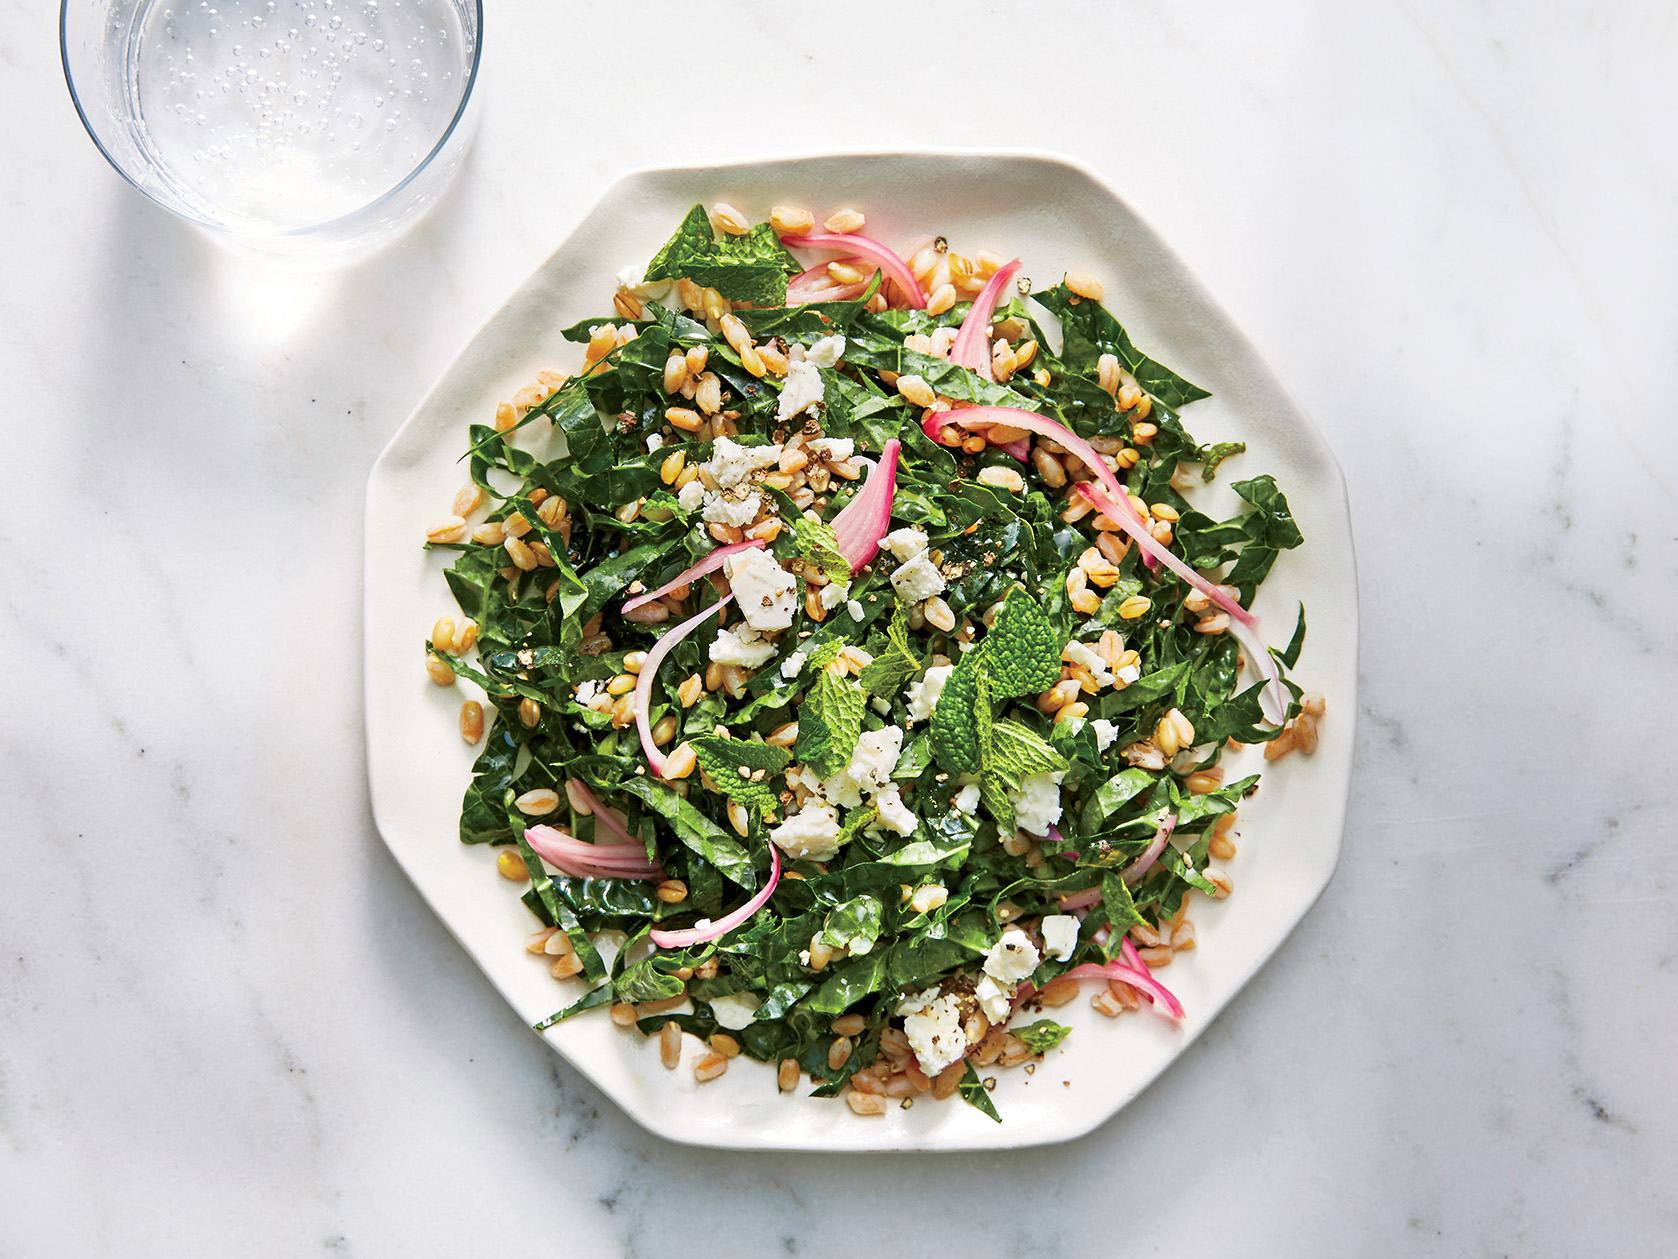 Kale, Farro, and Feta Salad